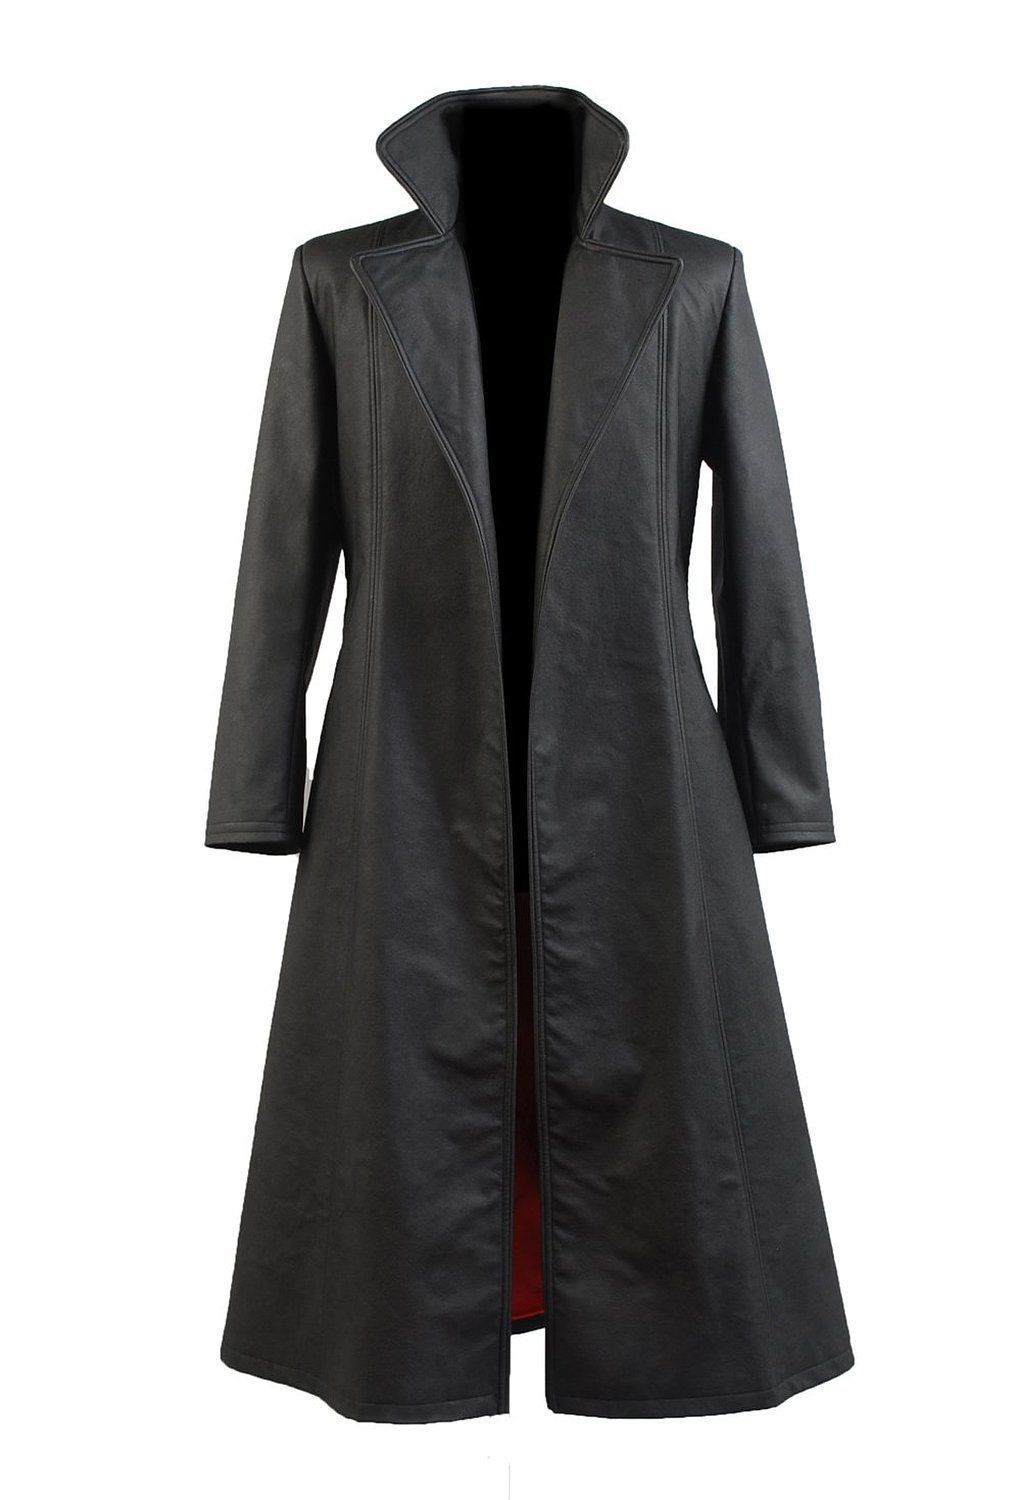 Wesley Snipes Blade Leather Trench Coat Filmstaroutfits Com